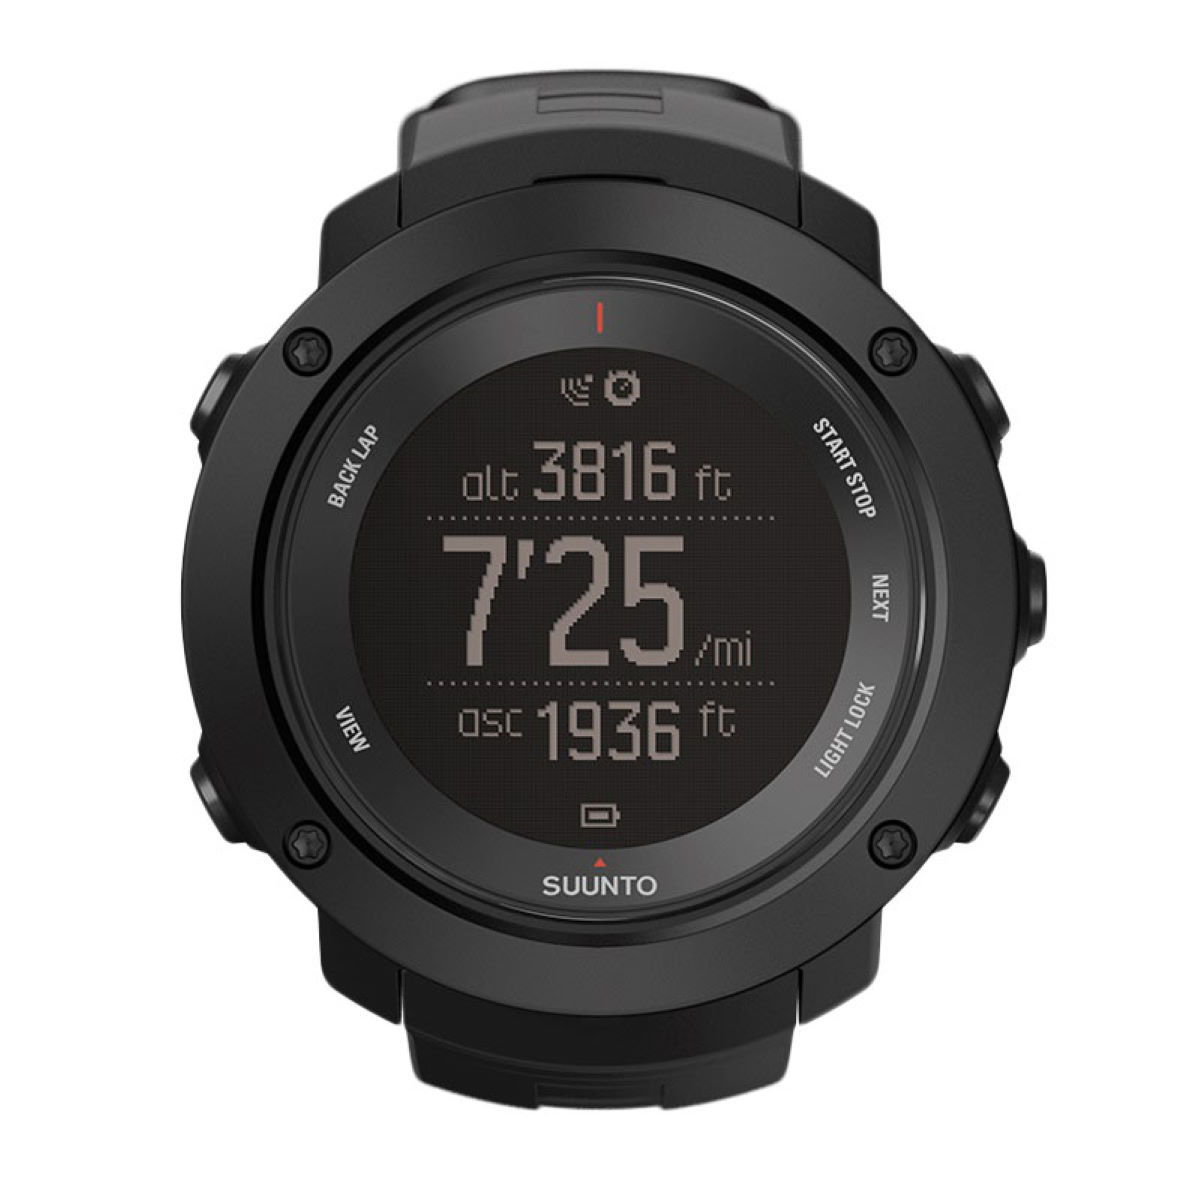 Montre Suunto Ambit 3 Vertical - Noir Compteurs GPS de running